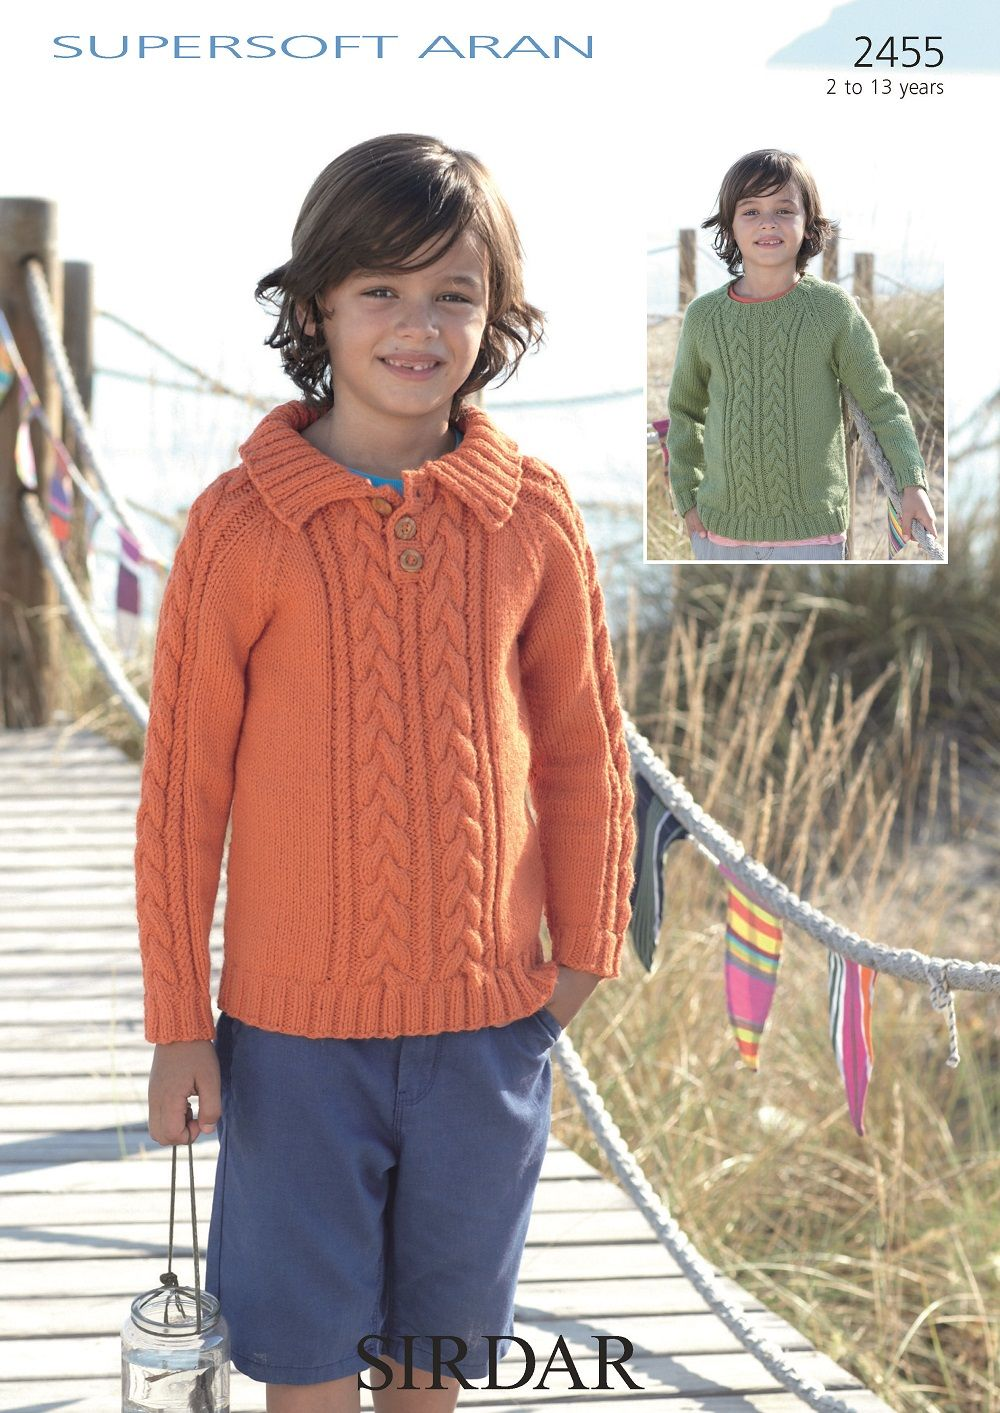 Sirdar Boys Sweaters Knitting pattern in Supersoft Aran 2455P PDF